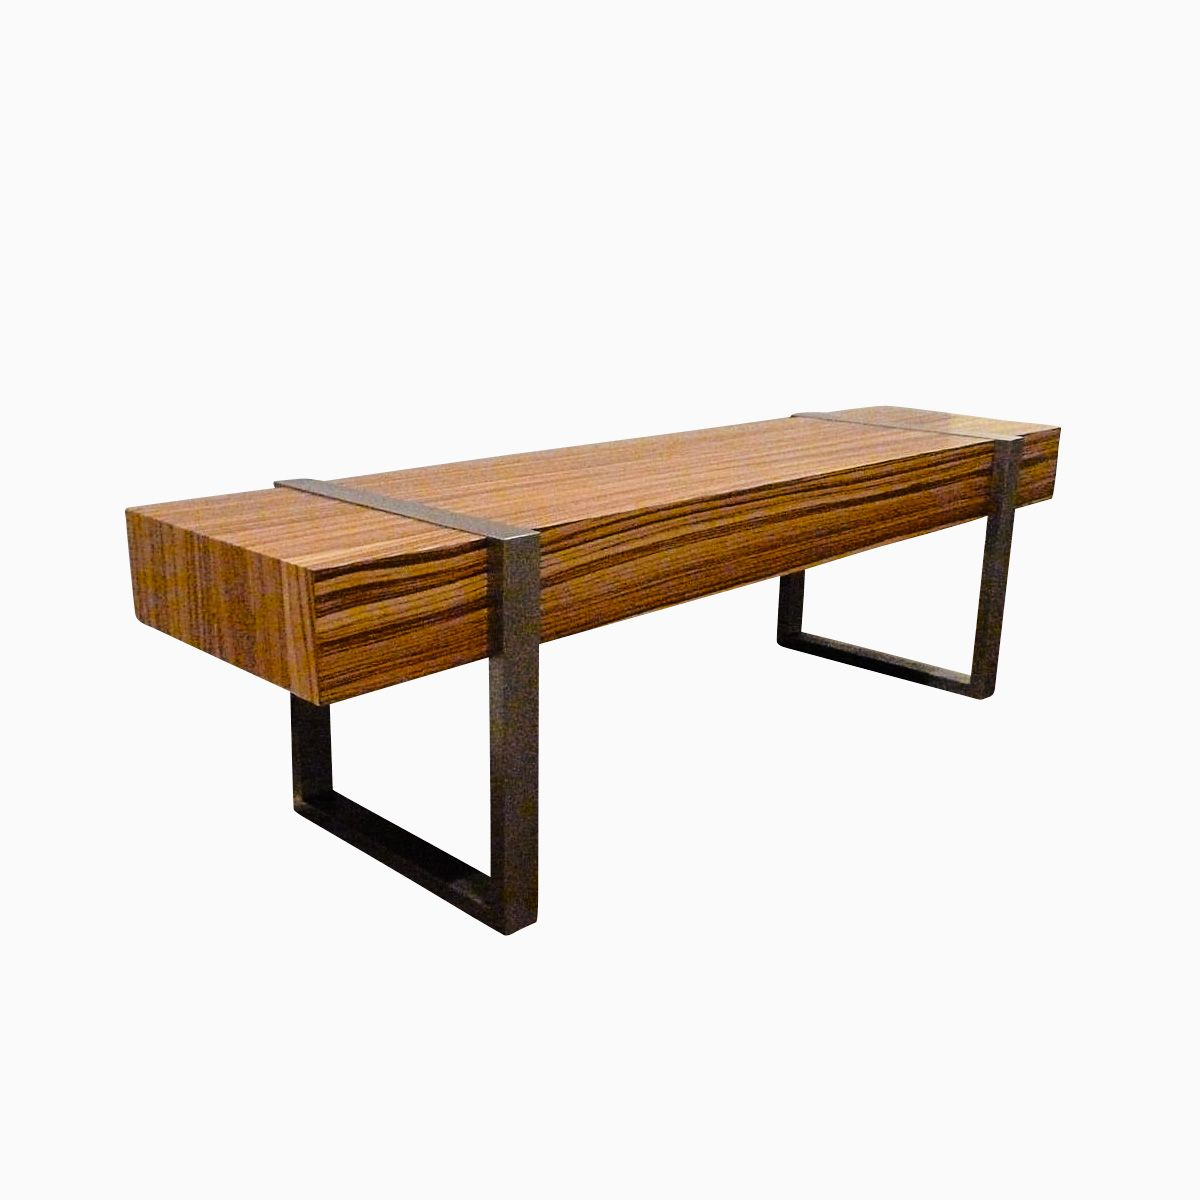 home wood bench zin room windsor vbfs indigo dining modern prm